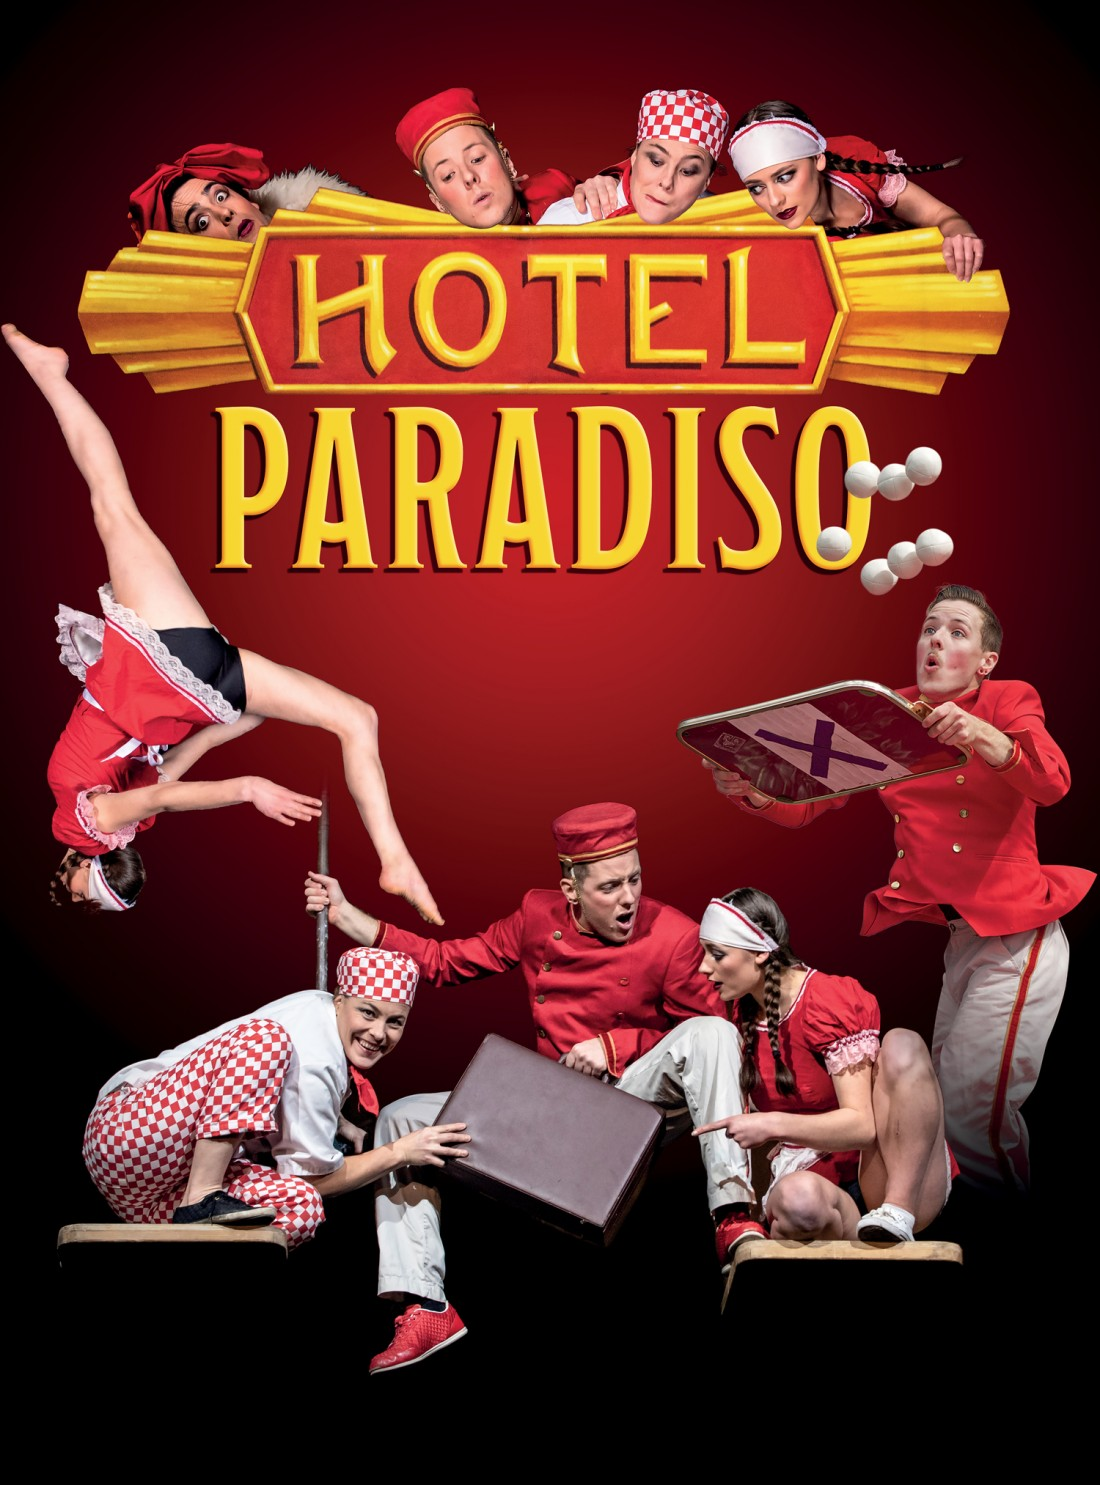 Lost In Translation Circus present 'Hotel Paradiso' at Lancaster Arts on 8-9 February 2019.